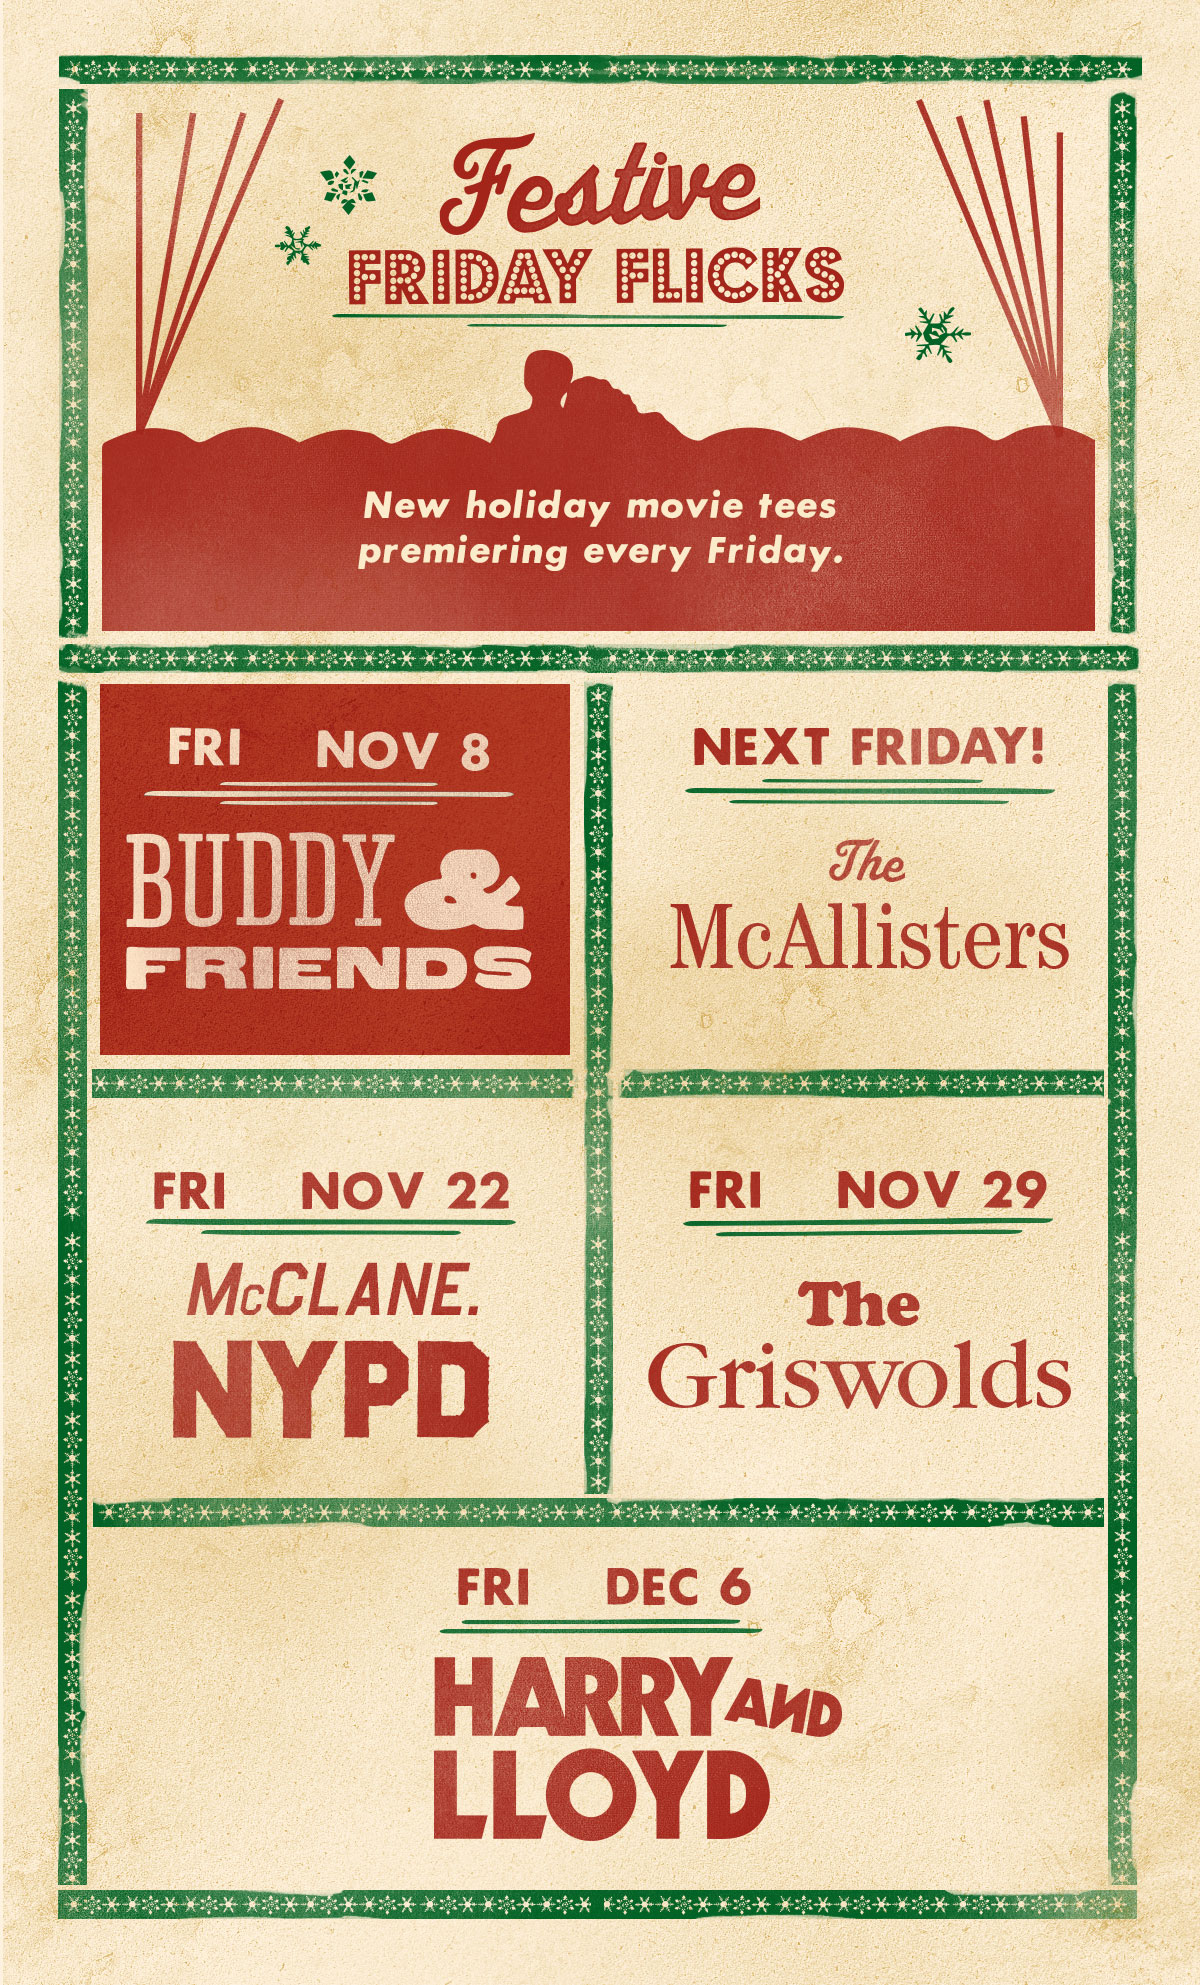 Festive Friday Flicks are released every Friday thru December 6th!